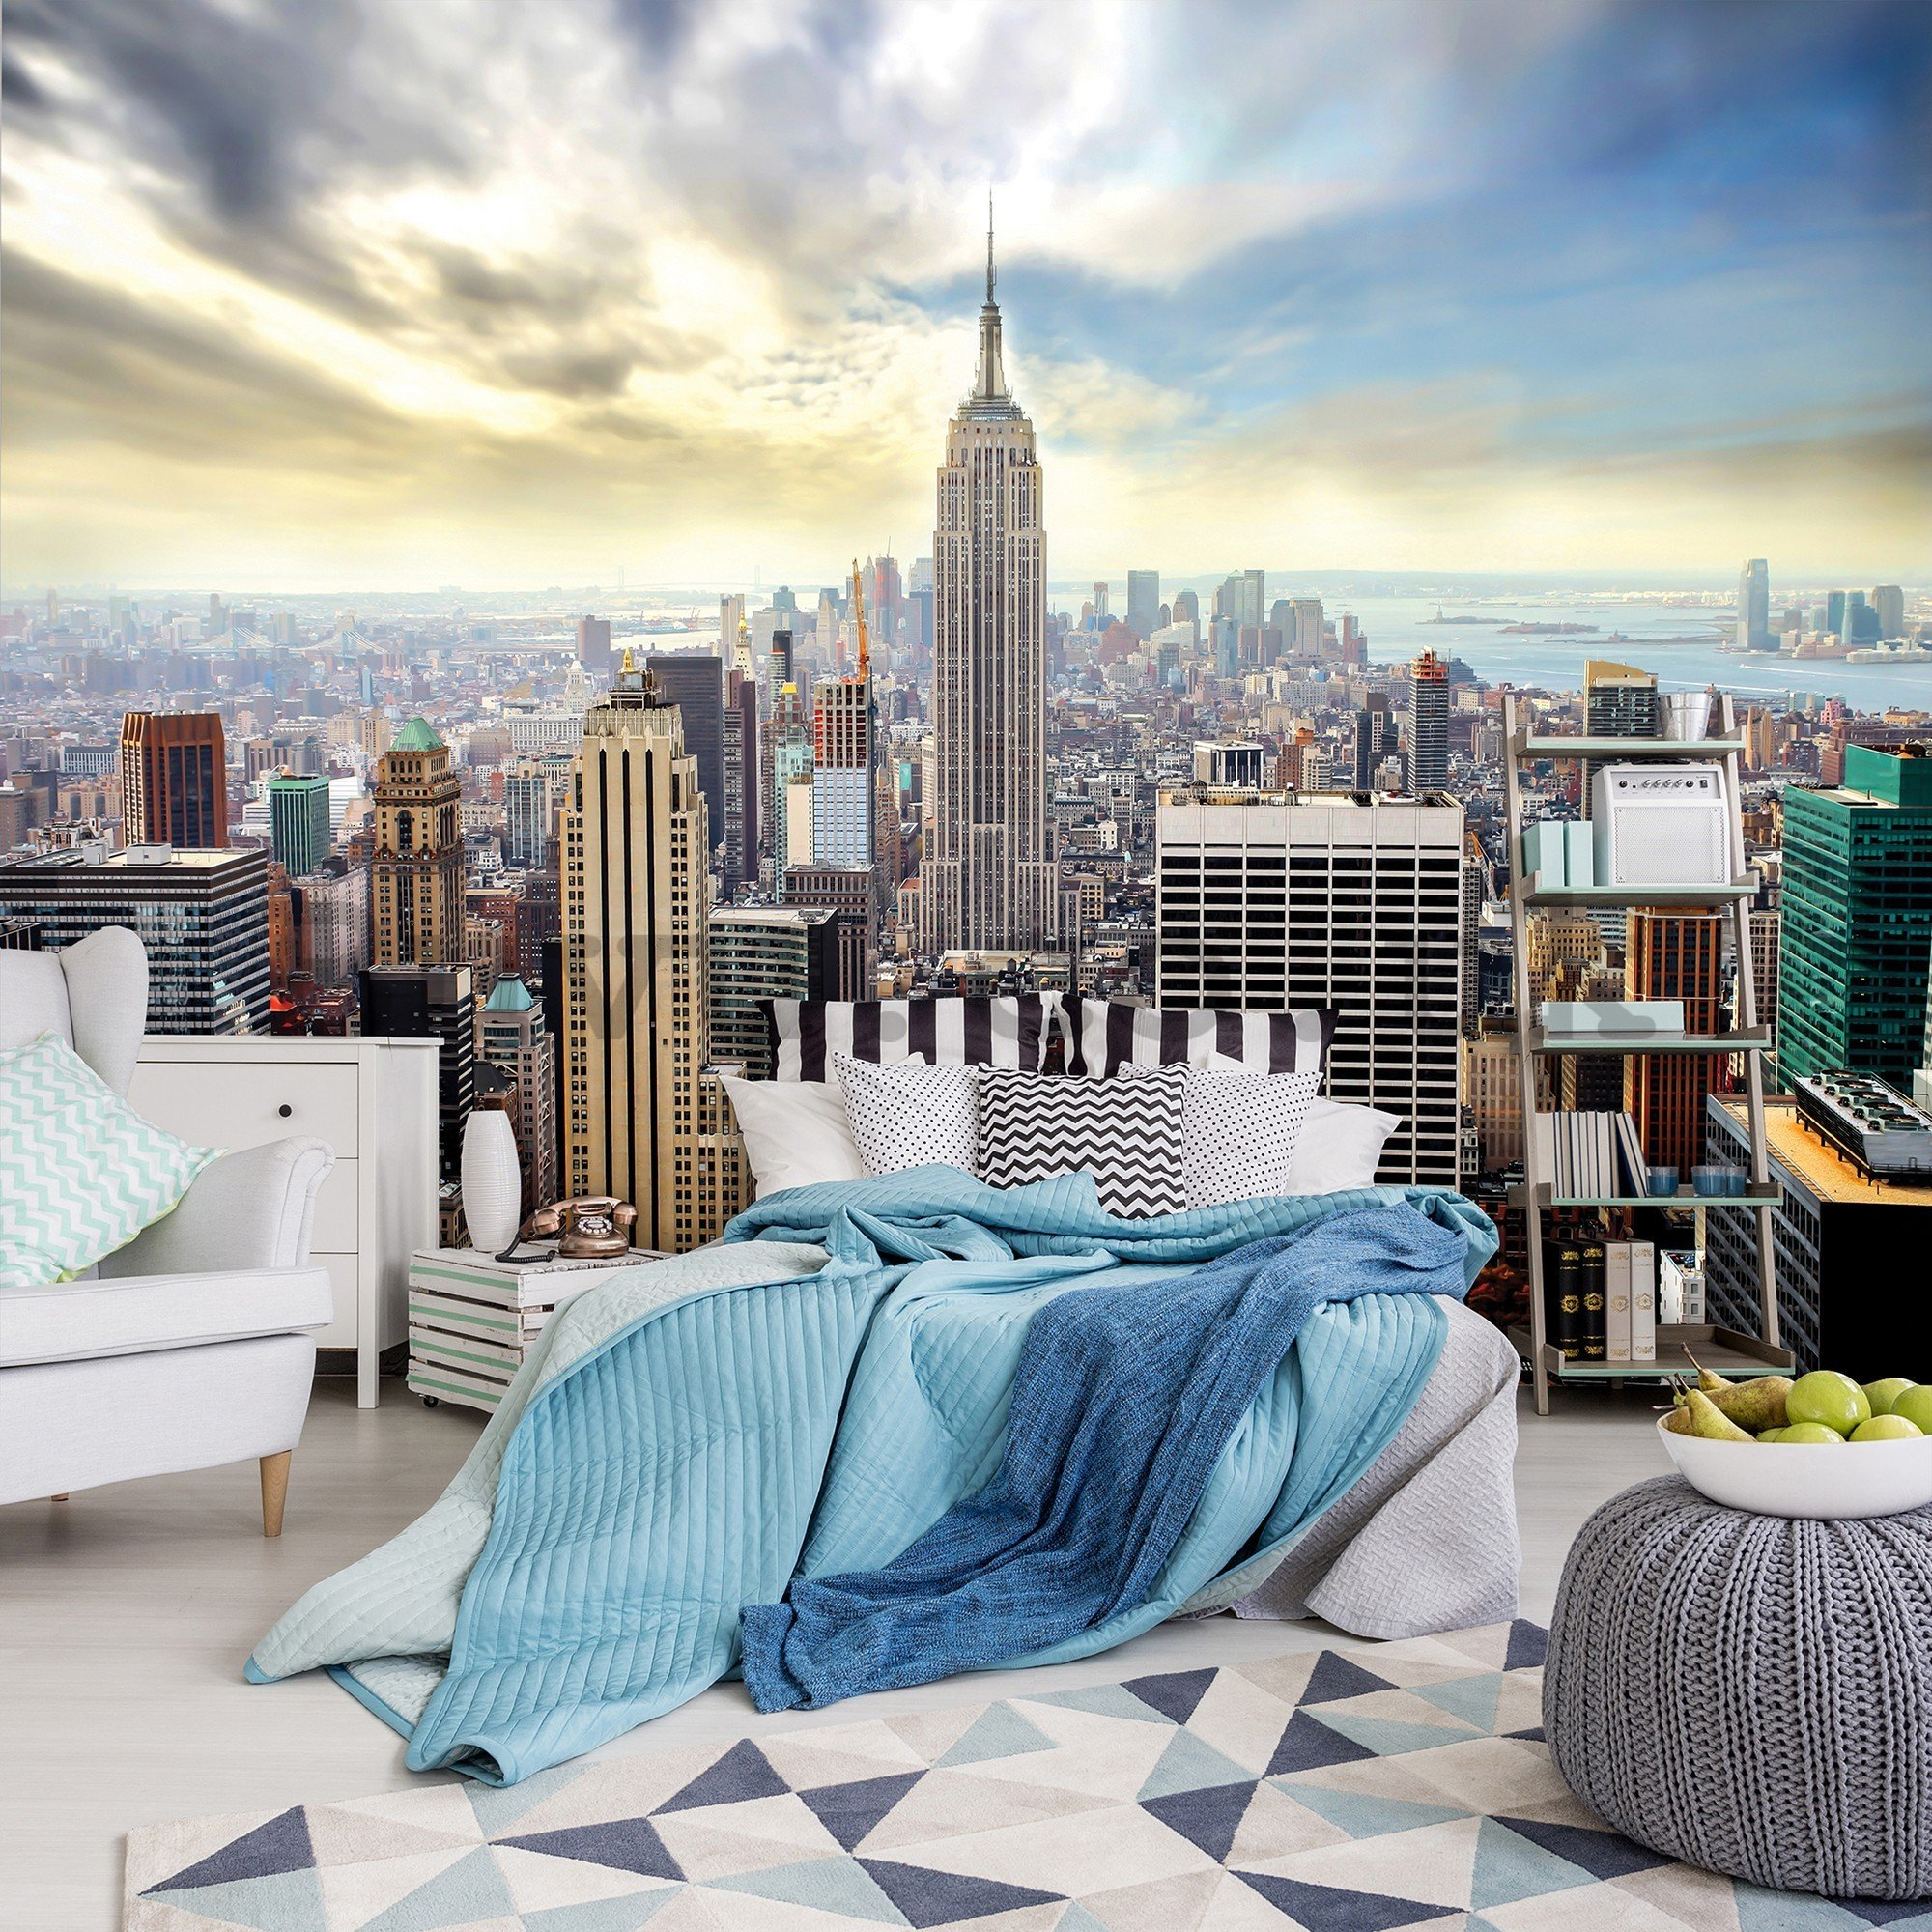 Wall mural vlies: View on New York - 416x254 cm